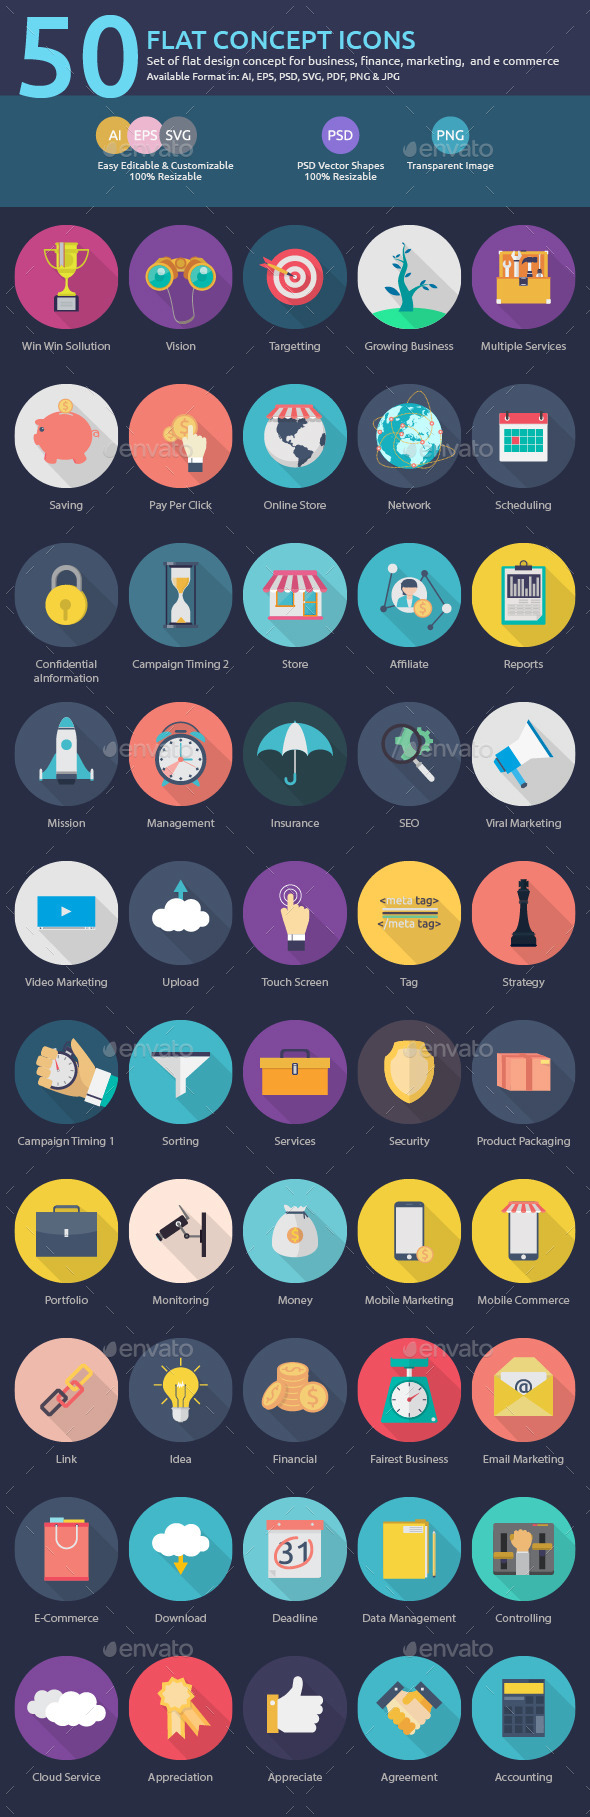 GraphicRiver 50 Flat Concept Icons 11780178